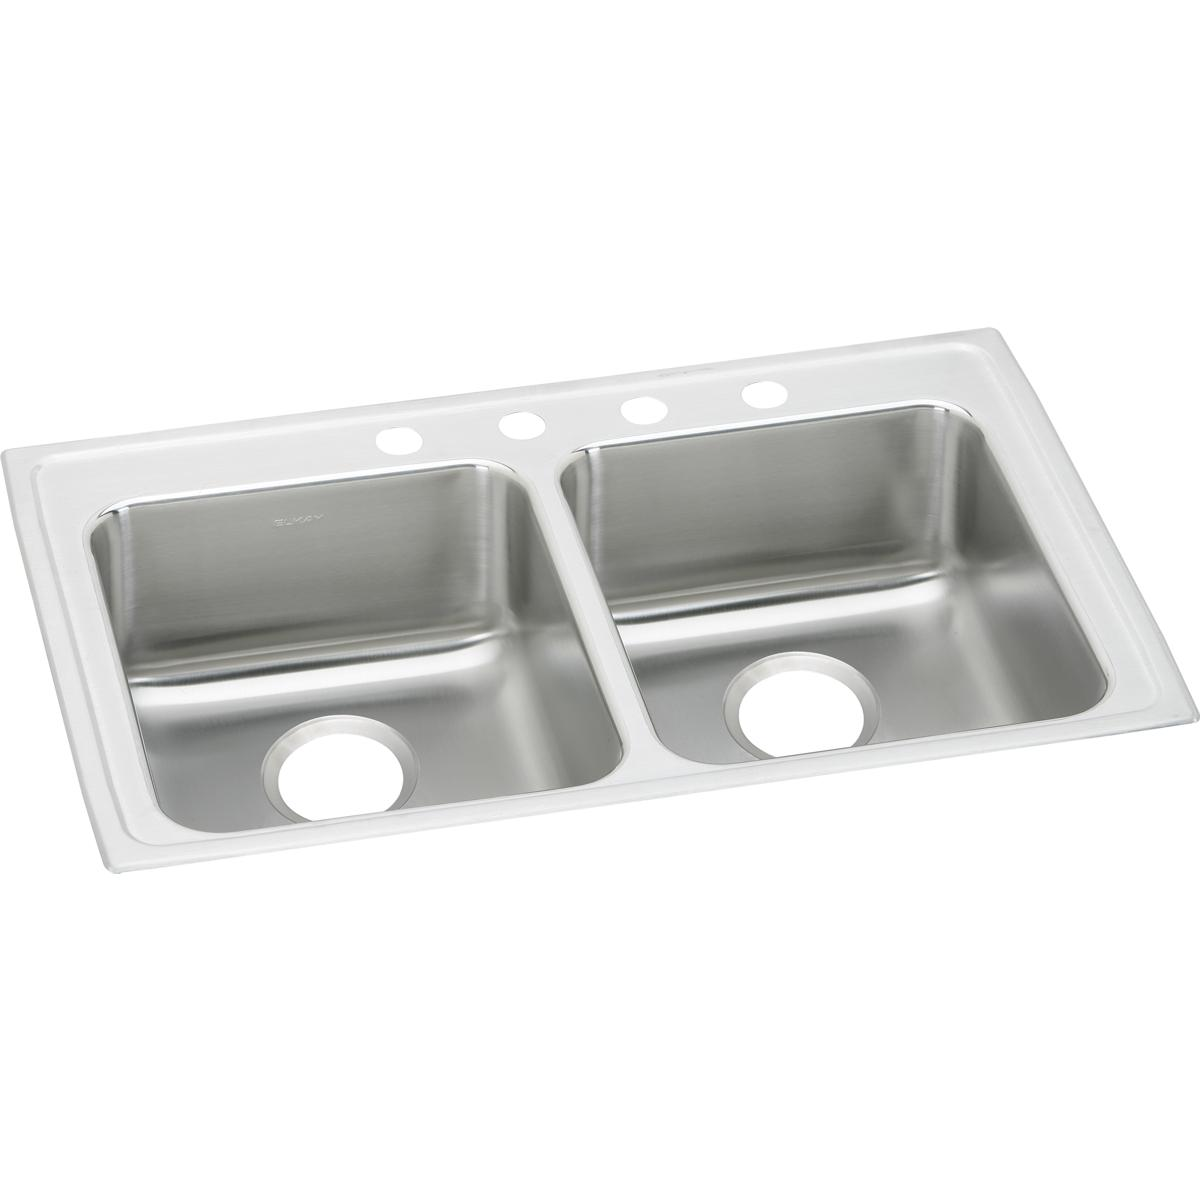 "Elkay Lustertone Classic Stainless Steel 33"" x 19-1/2"" x 5"", Equal Double Bowl Drop-in ADA Sink"